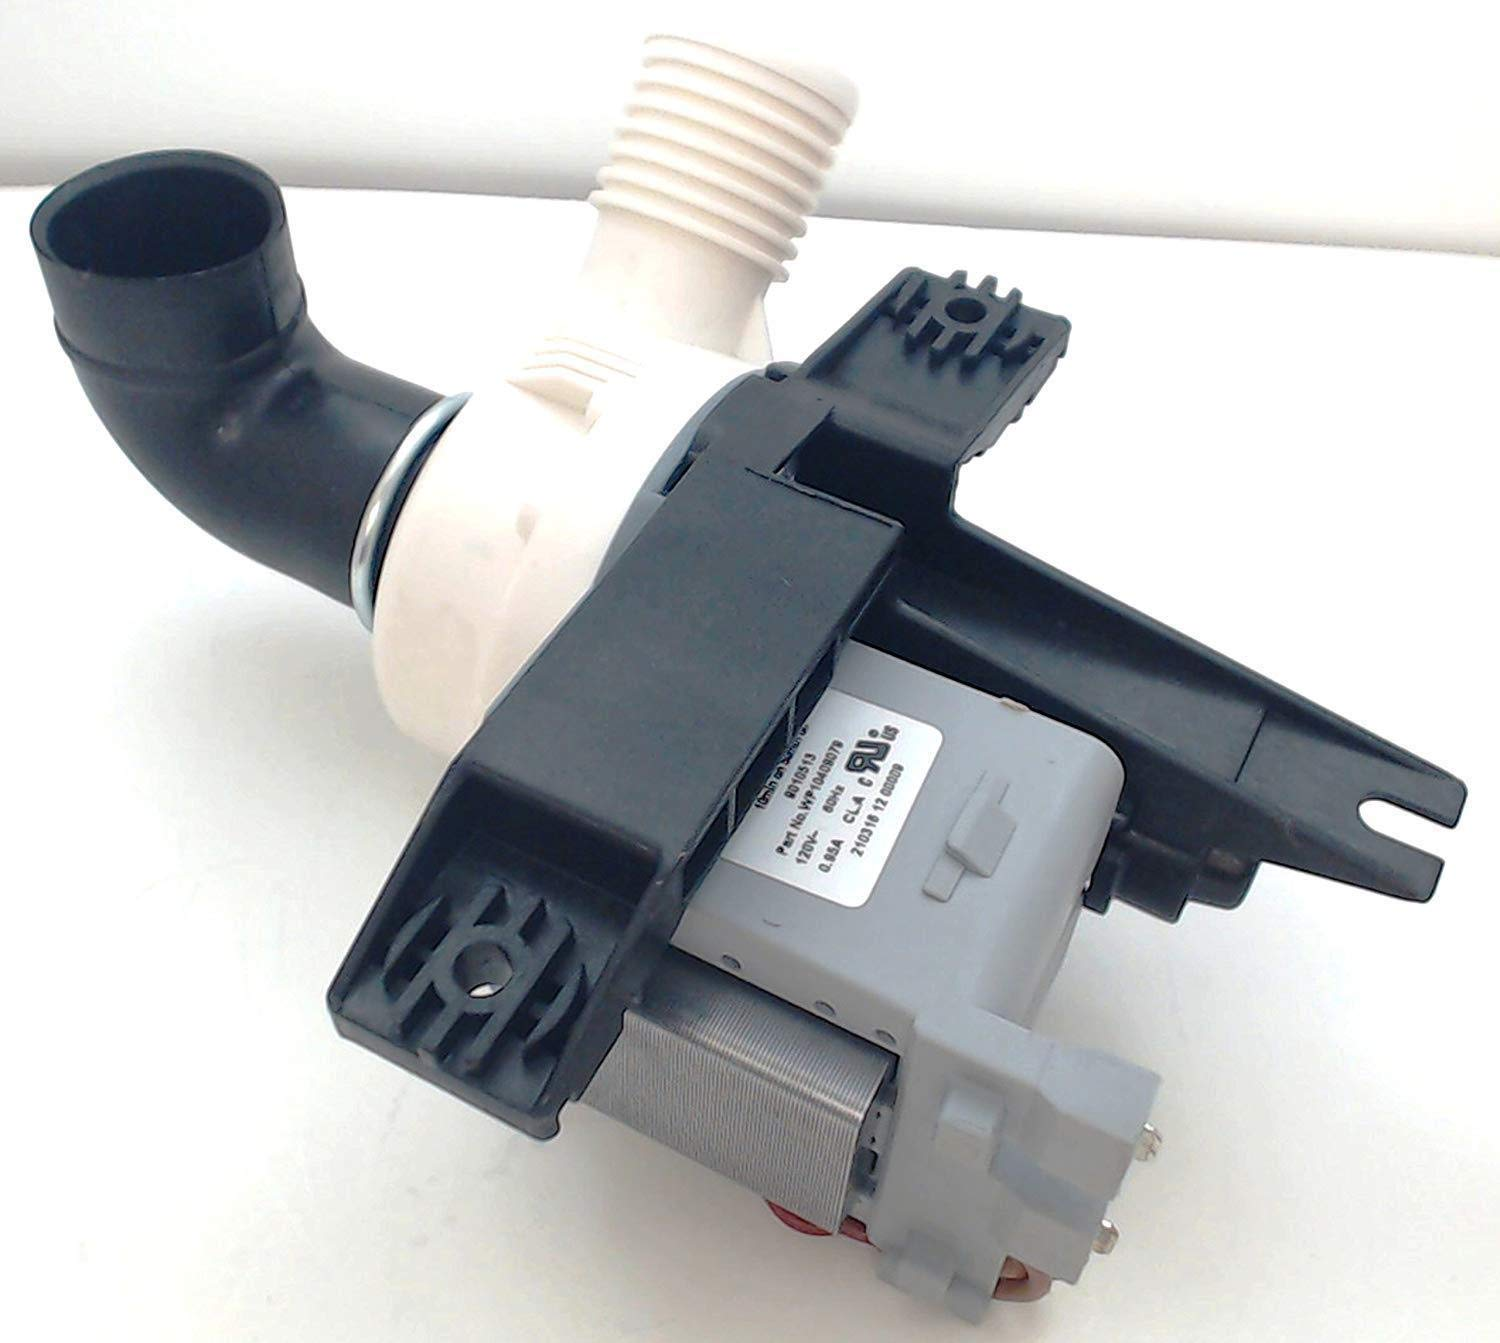 NEW Compatible Replacement Pump for Whirlpool Maytag Kenmore W10409079, WPW10409079, PS11754363, AP6021043, by Primeco - 1 YEAR WARRANTY